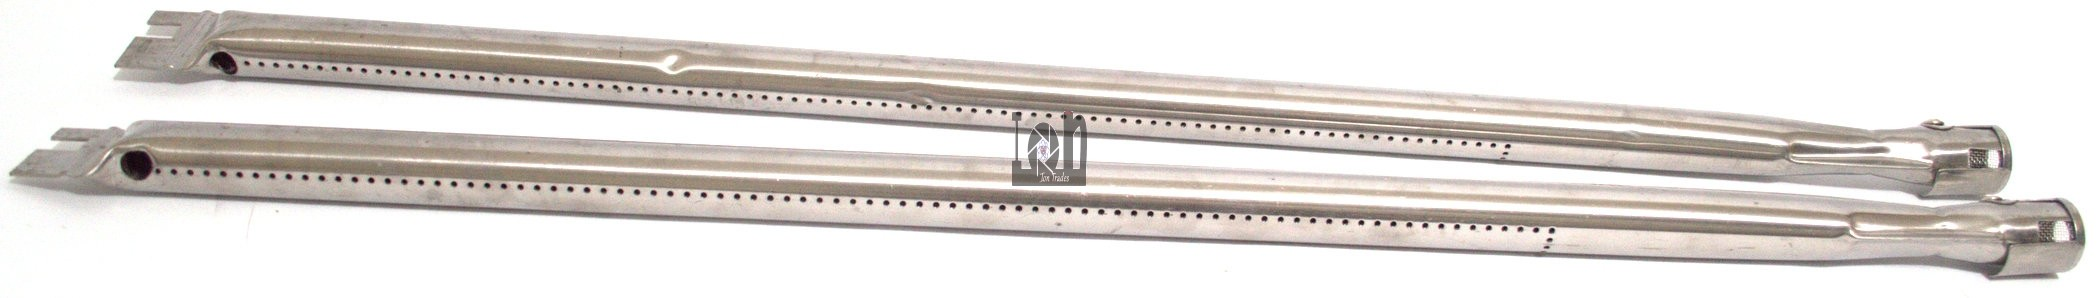 """2pc 28"""" x 1 Gas Grill Burners Stainless Steel Tube Burner Replacement Parts"""